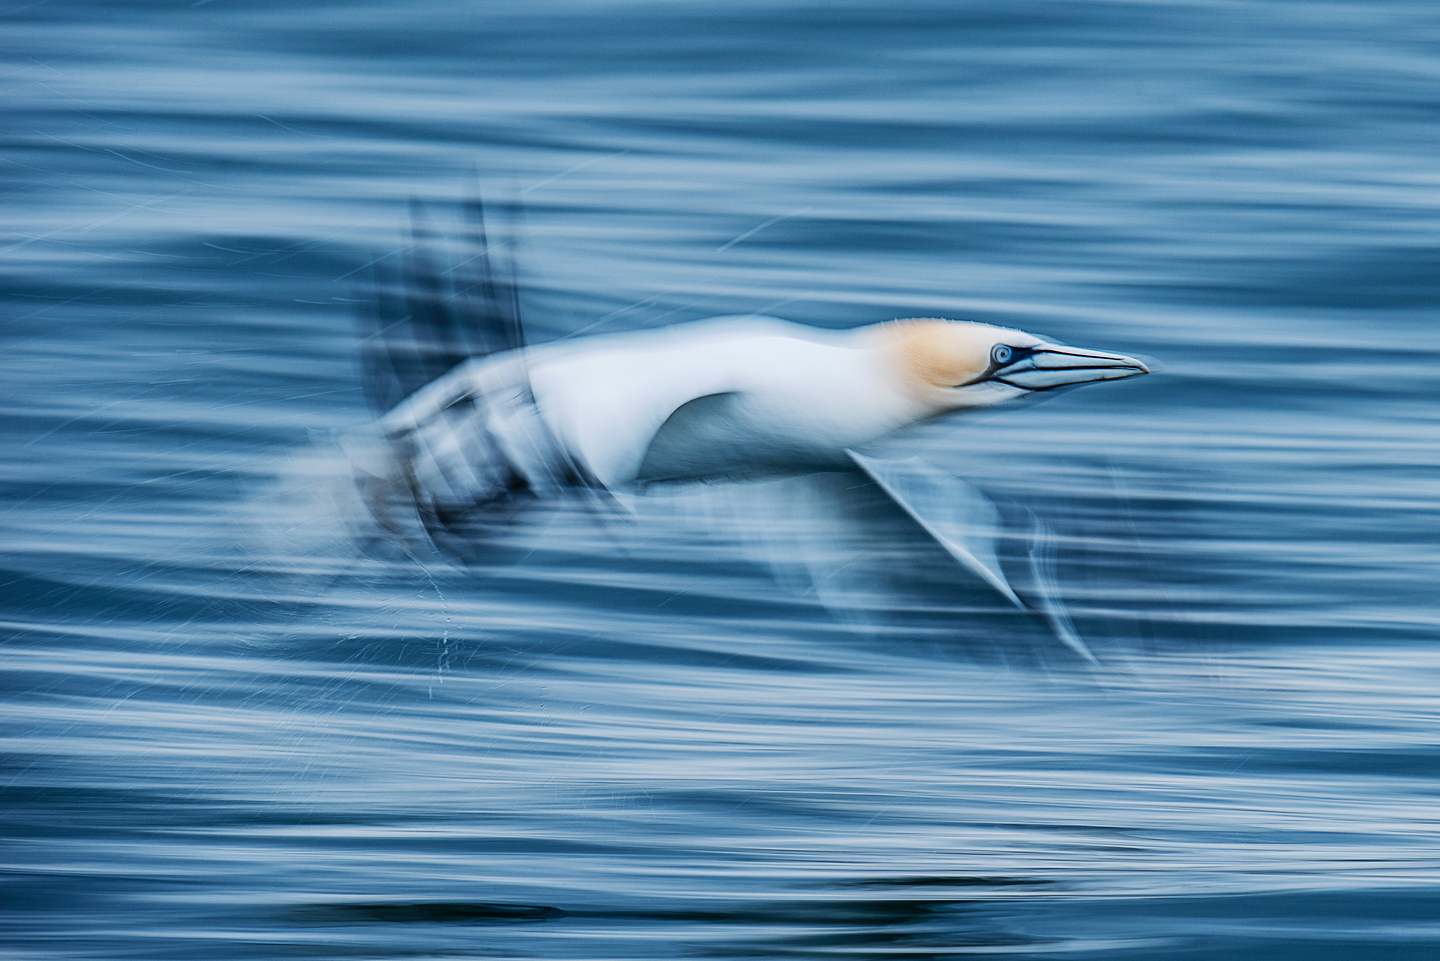 Offshore development is unfortunately not the only human activity affecting the UK's gannet population. Waste from Atlantic fisheries is causing devastation on an island just 8 miles off the Welsh coast